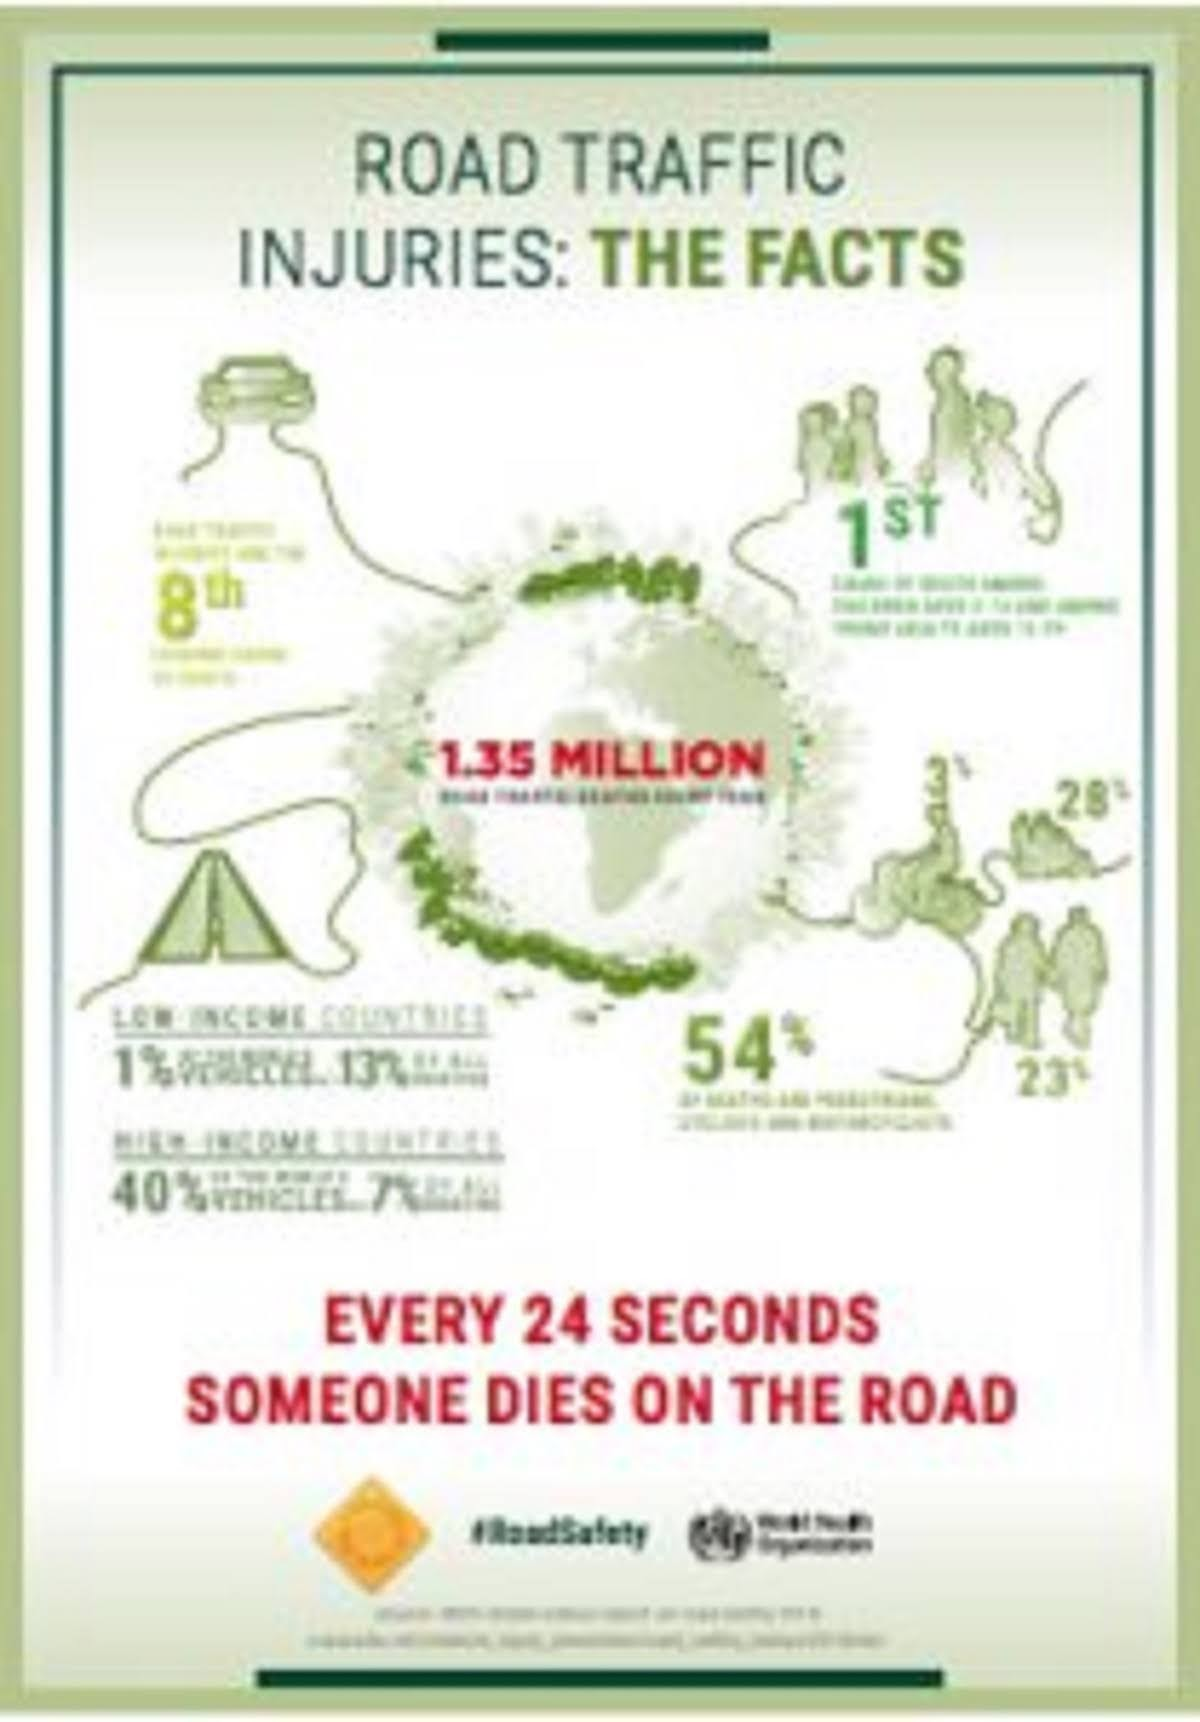 road-safety-facts-infographic